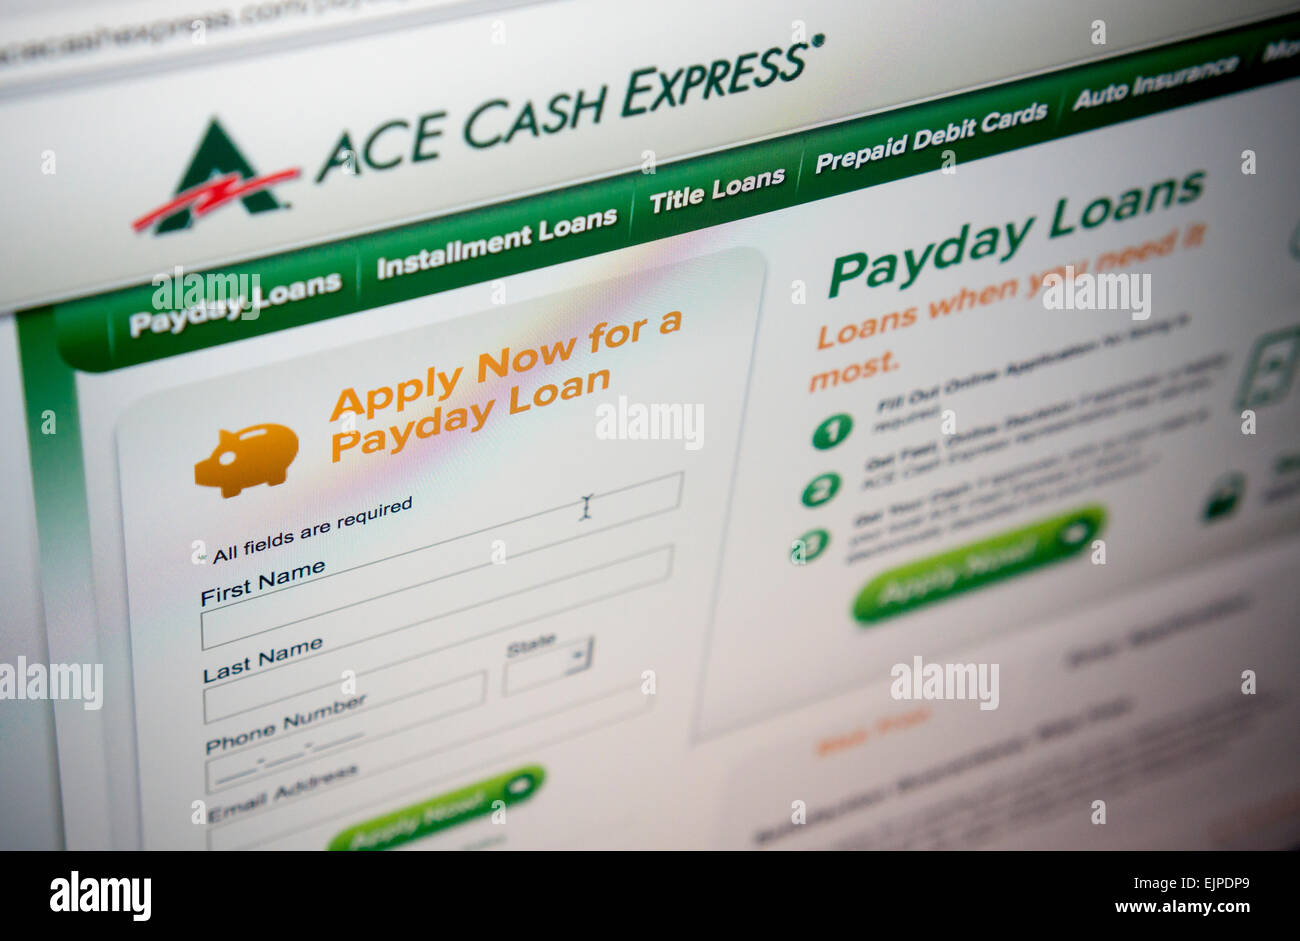 Instant pay payday loans picture 10